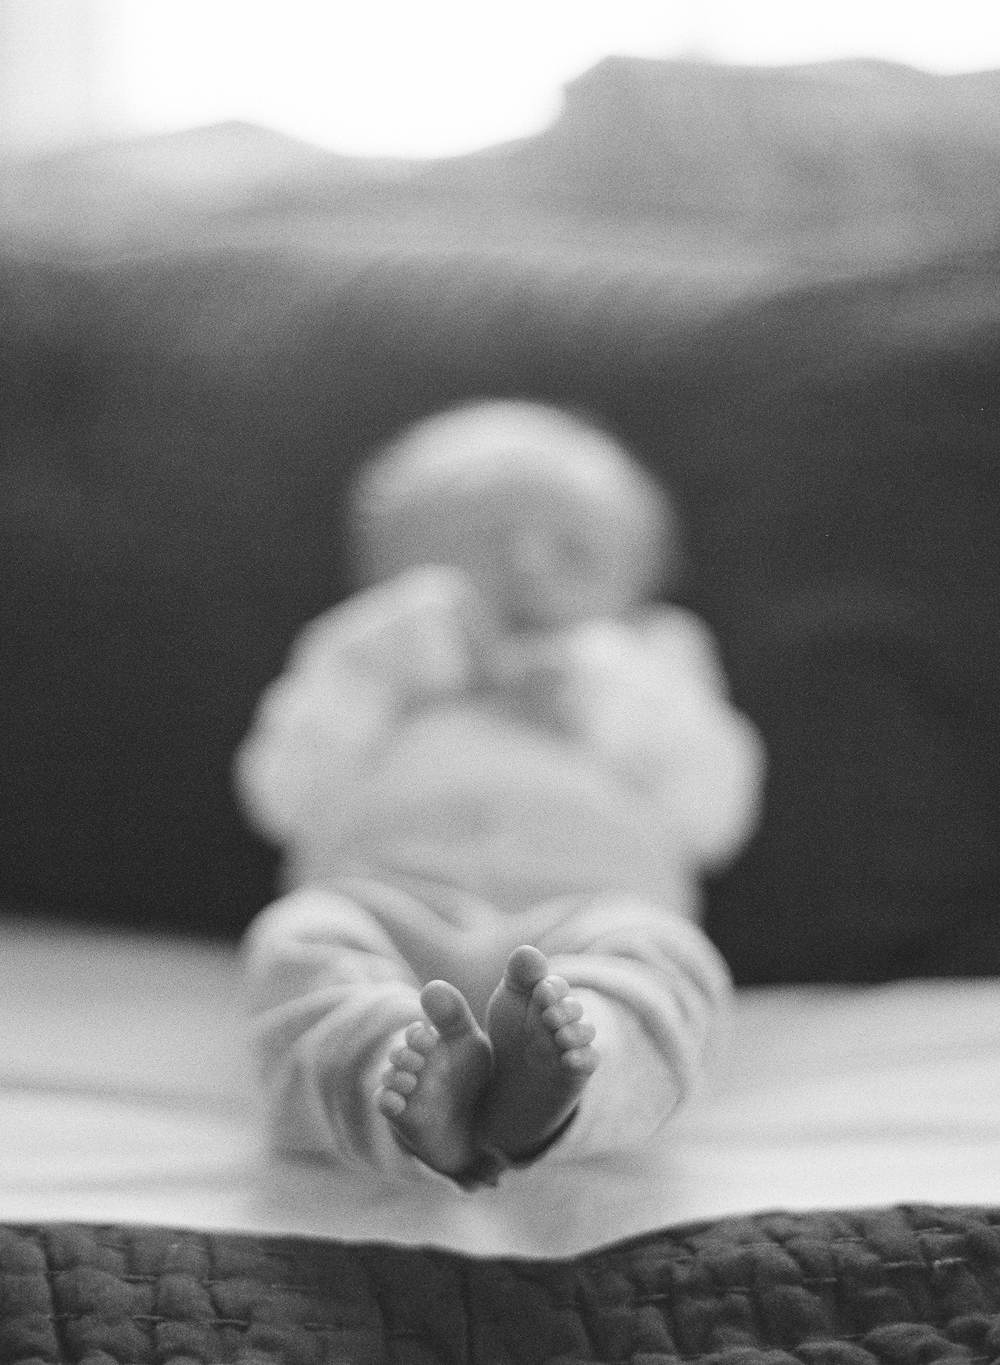 newborn-photography-wausau-wi-014.jpg